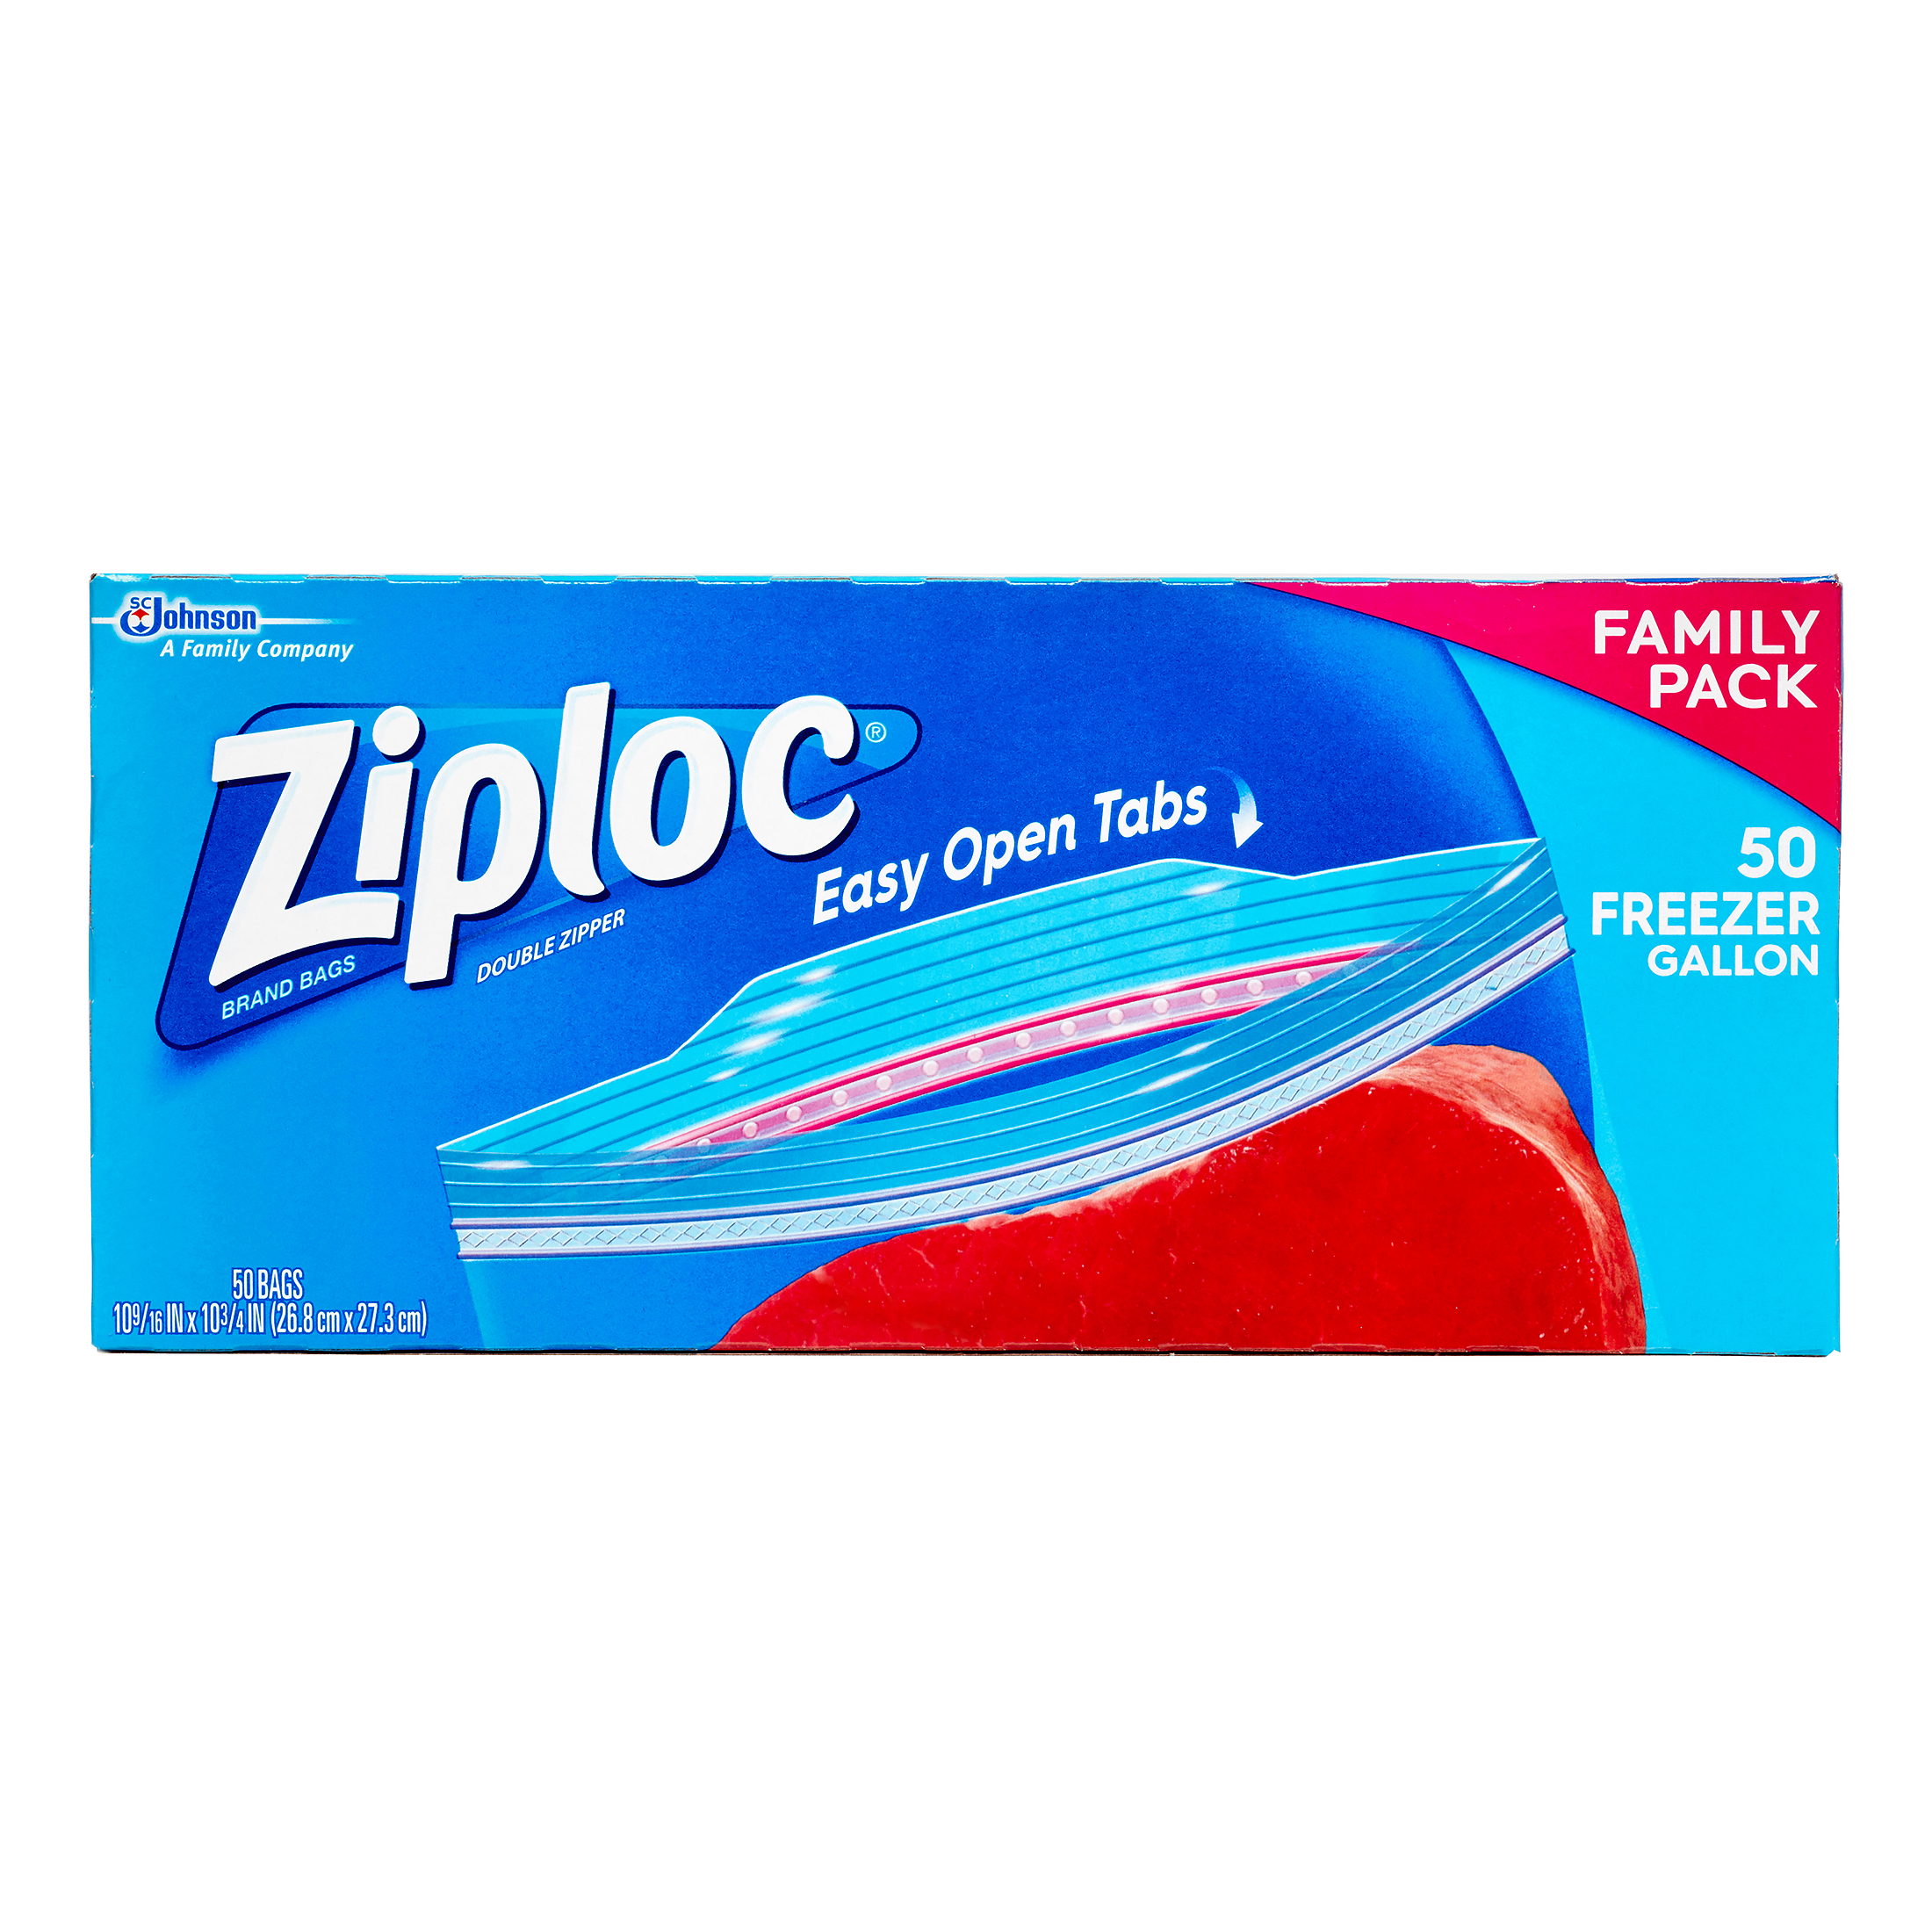 Ziploc Pinch and Seal Freezer Bags, Gallon, 50 Ct